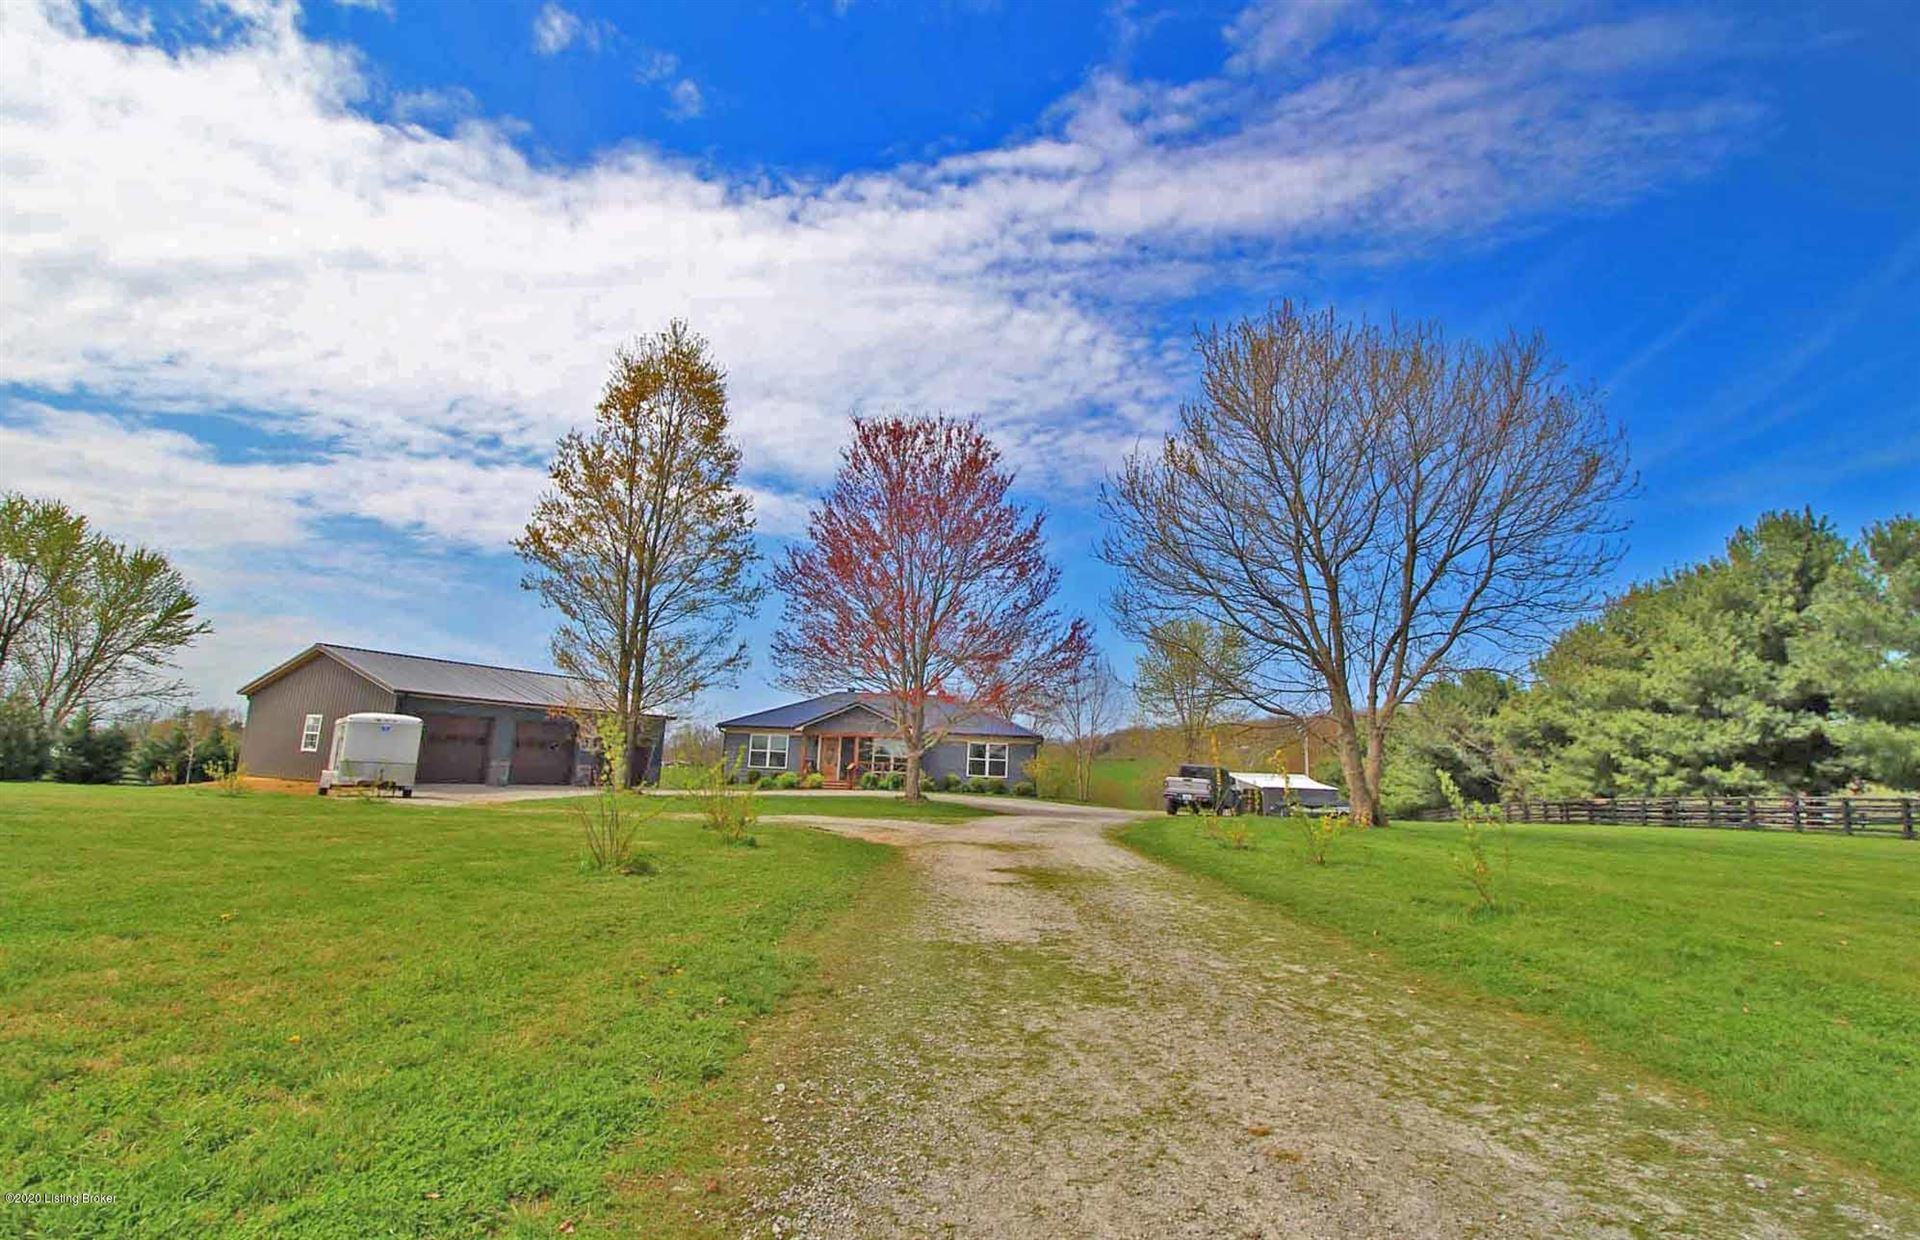 Property Image Of 1301 Buzzard Roost Rd In Shelbyville, Ky